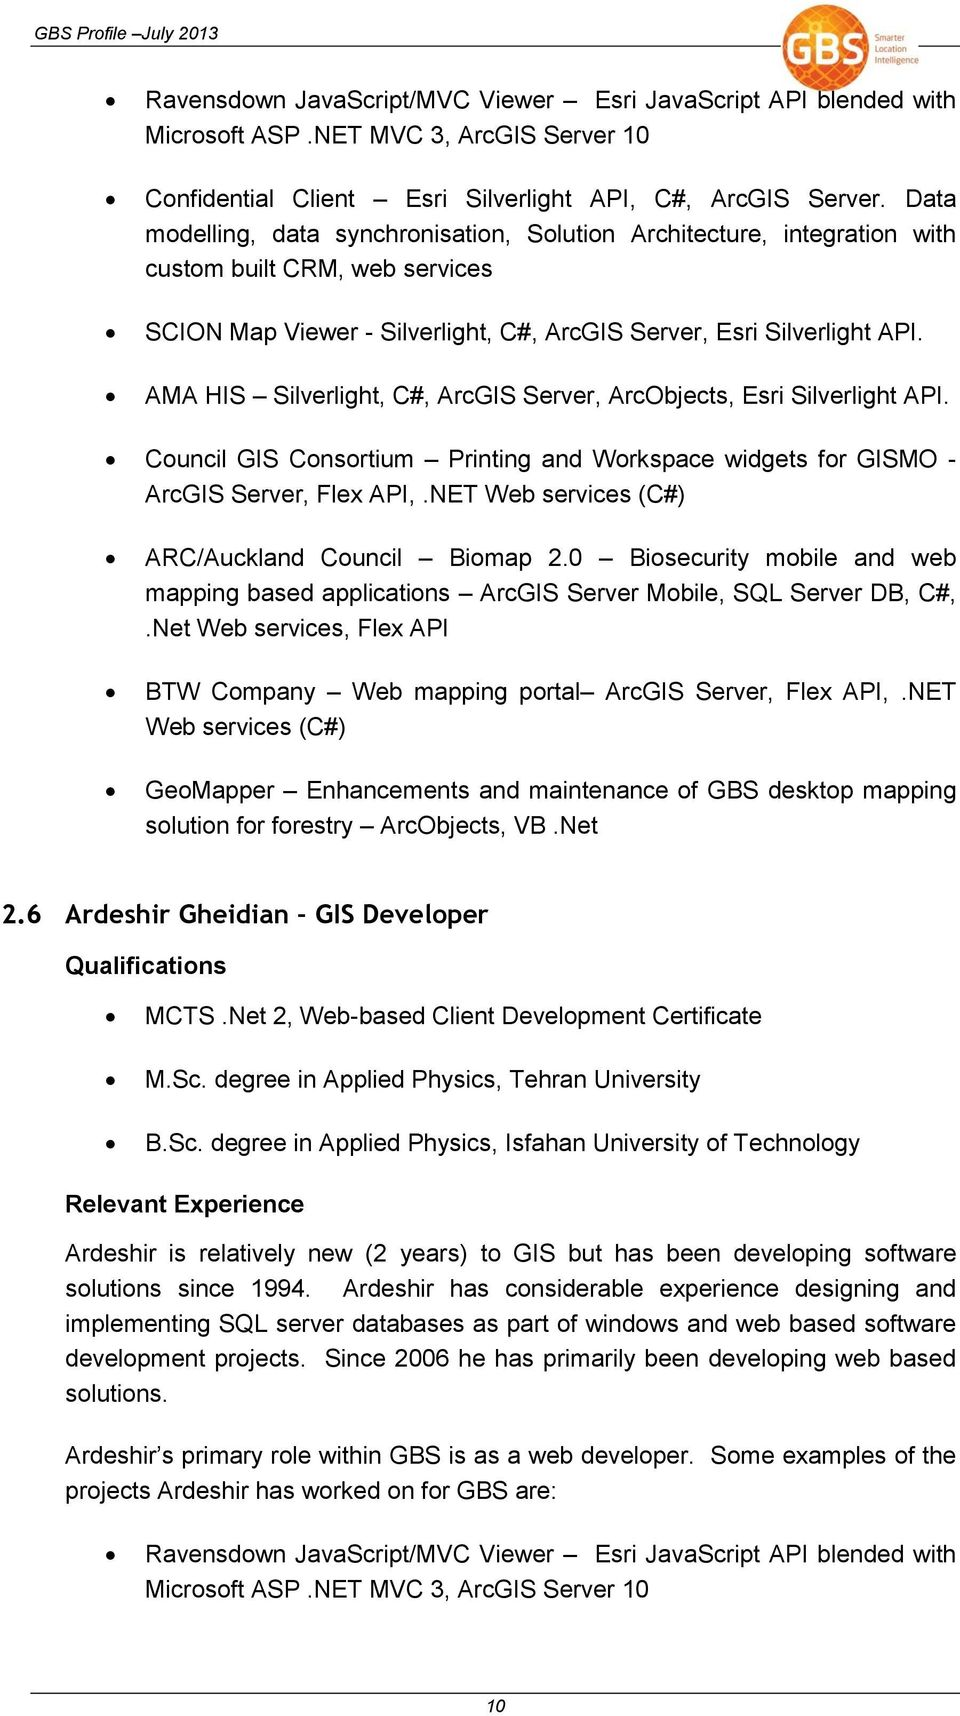 AMA HIS Silverlight, C#, ArcGIS Server, ArcObjects, Esri Silverlight API. Council GIS Consortium Printing and Workspace widgets for GISMO - ArcGIS Server, Flex API,.